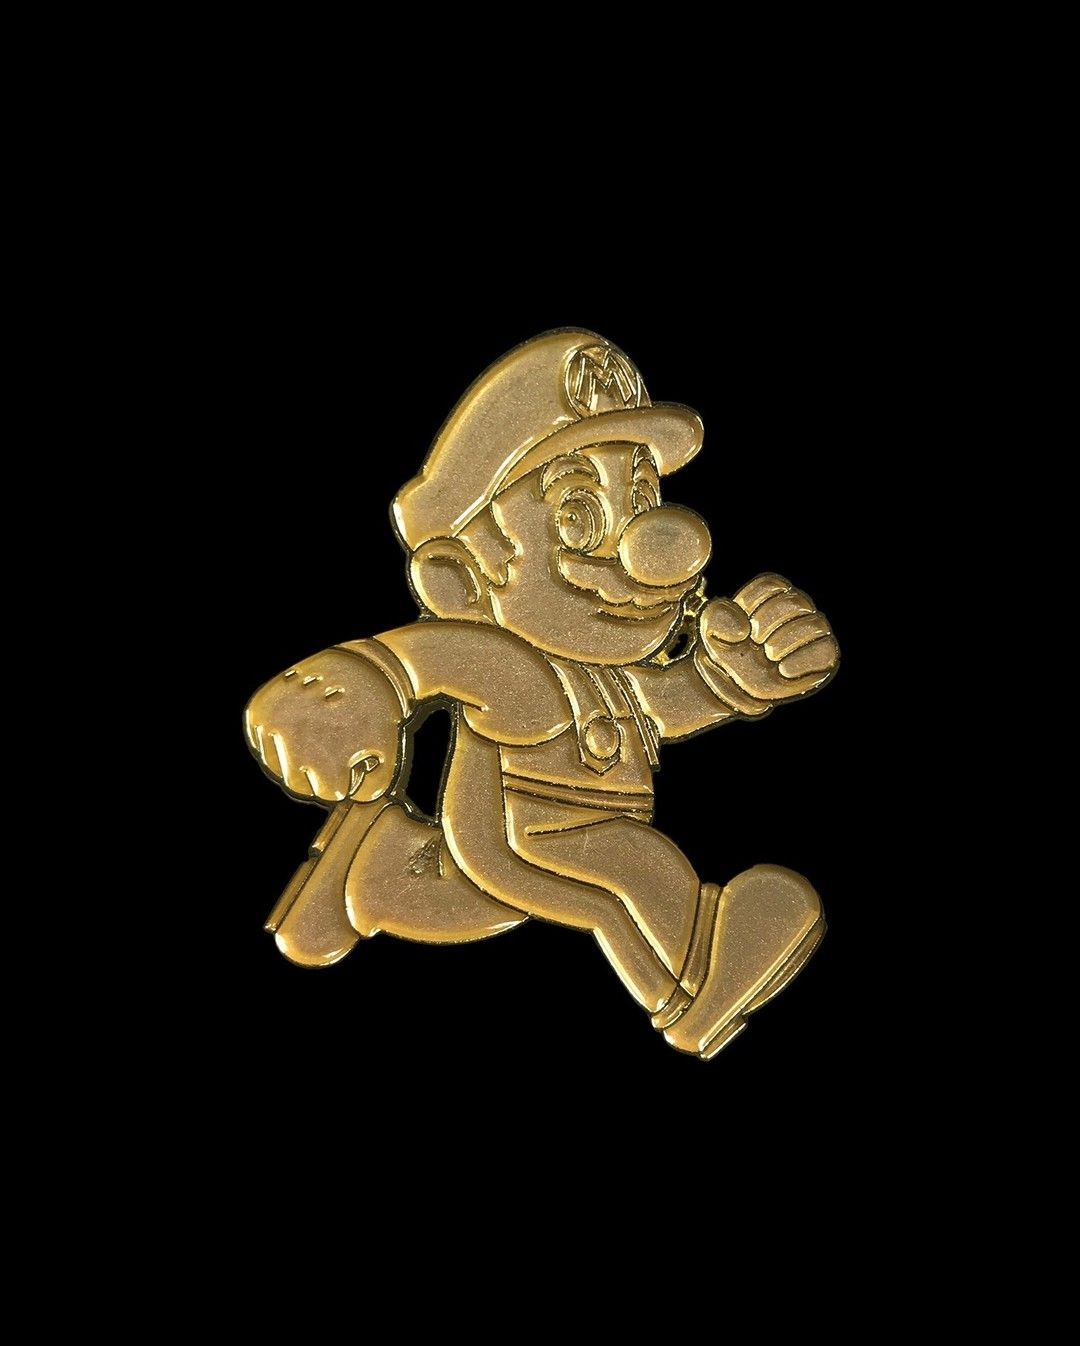 Gold Super Mario Run pin from @kingofthepin  Never stopping!  Available to buy through their link in bio!